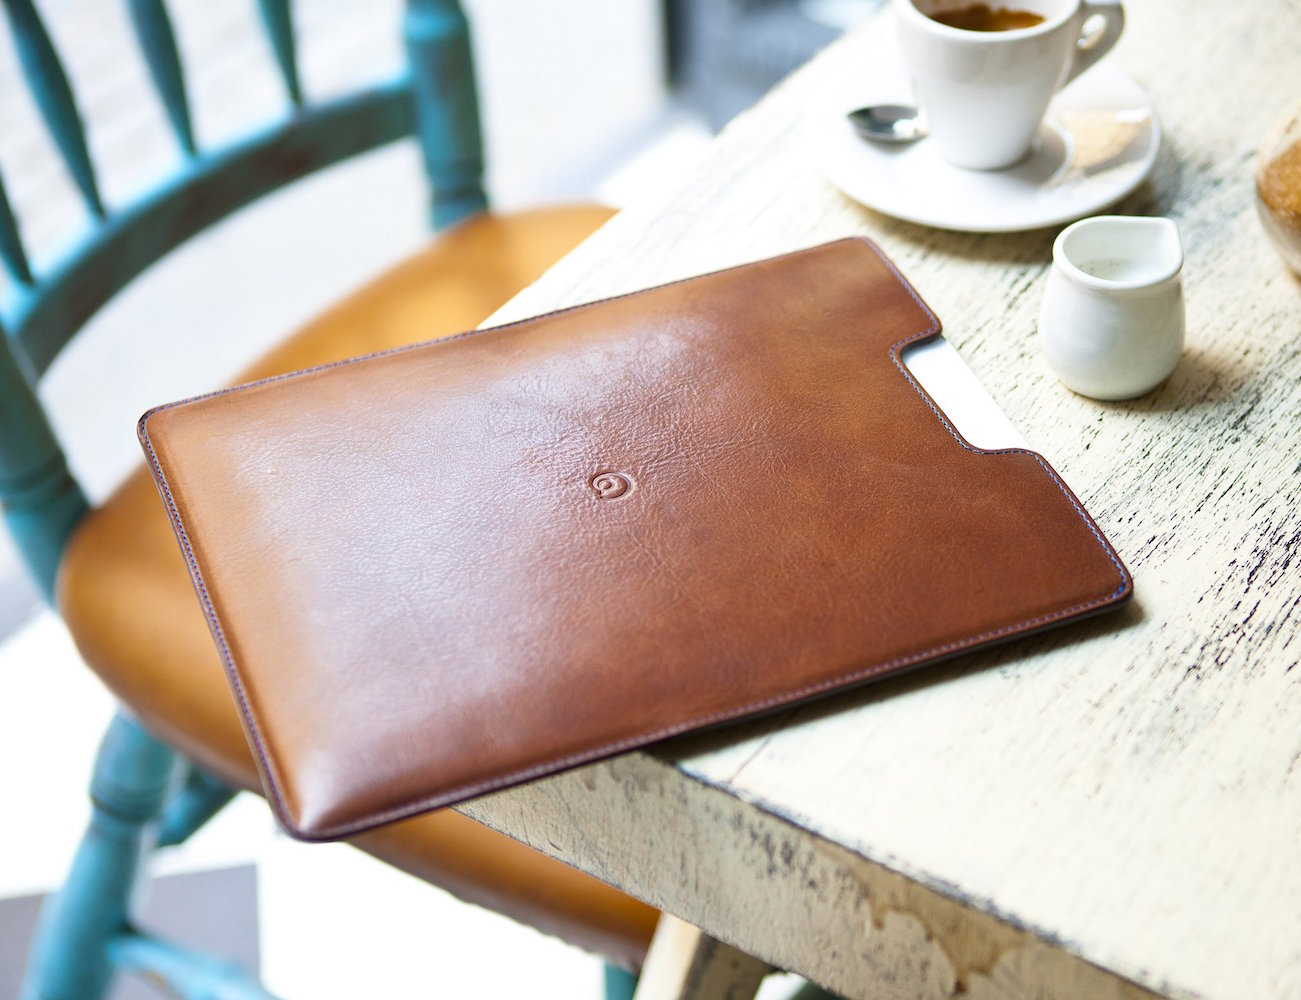 leather-ipad-sleeve-by-danny-p-03